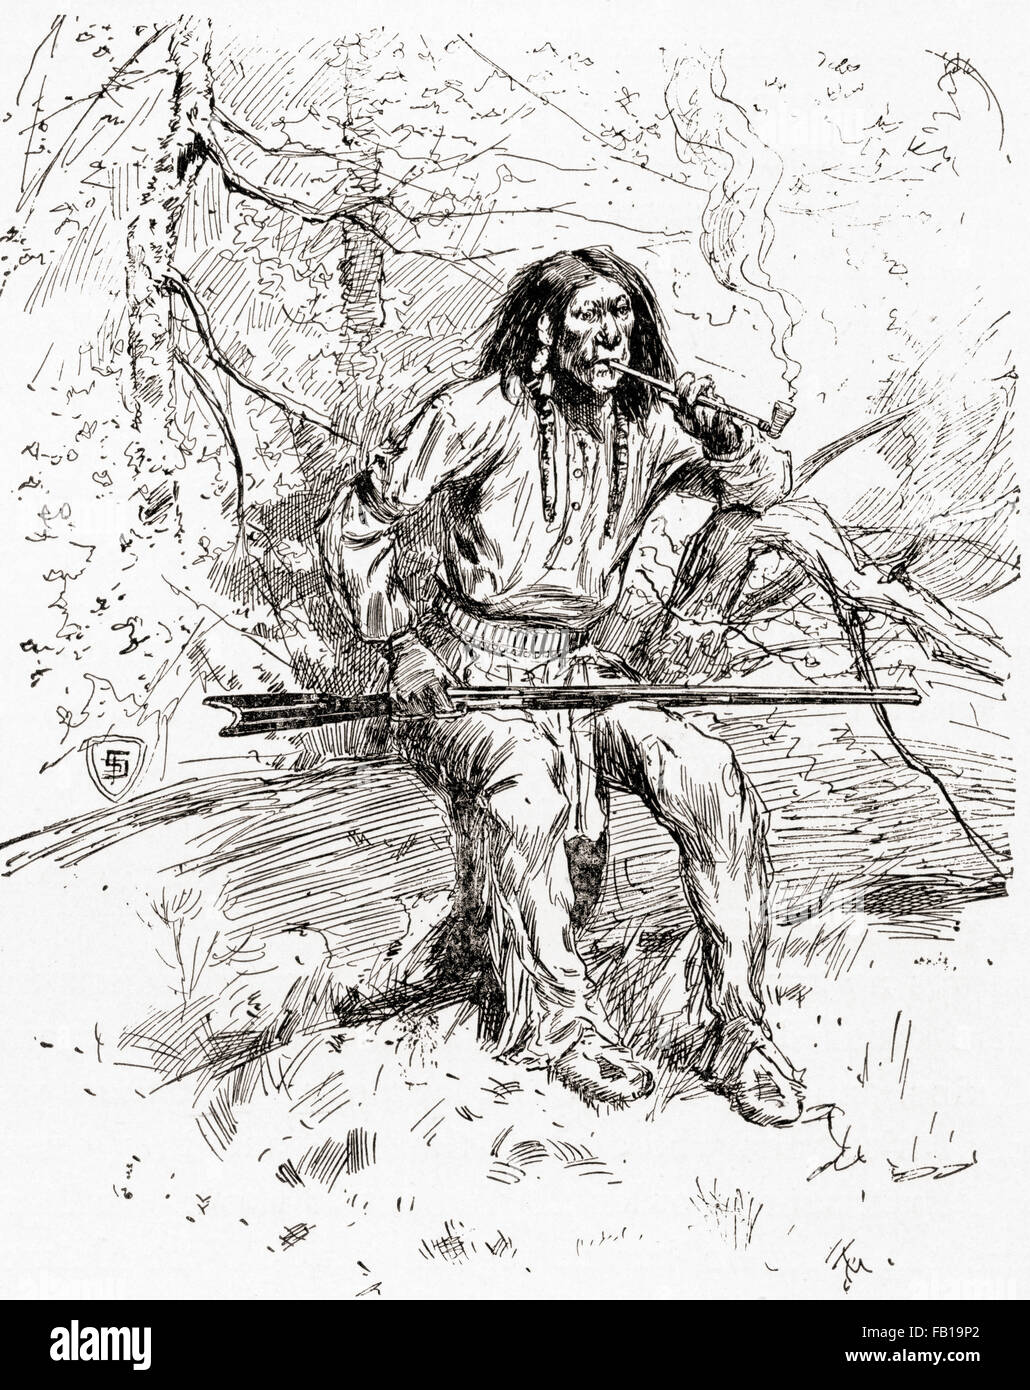 An Apache Indian warrior in the 19th century. - Stock Image